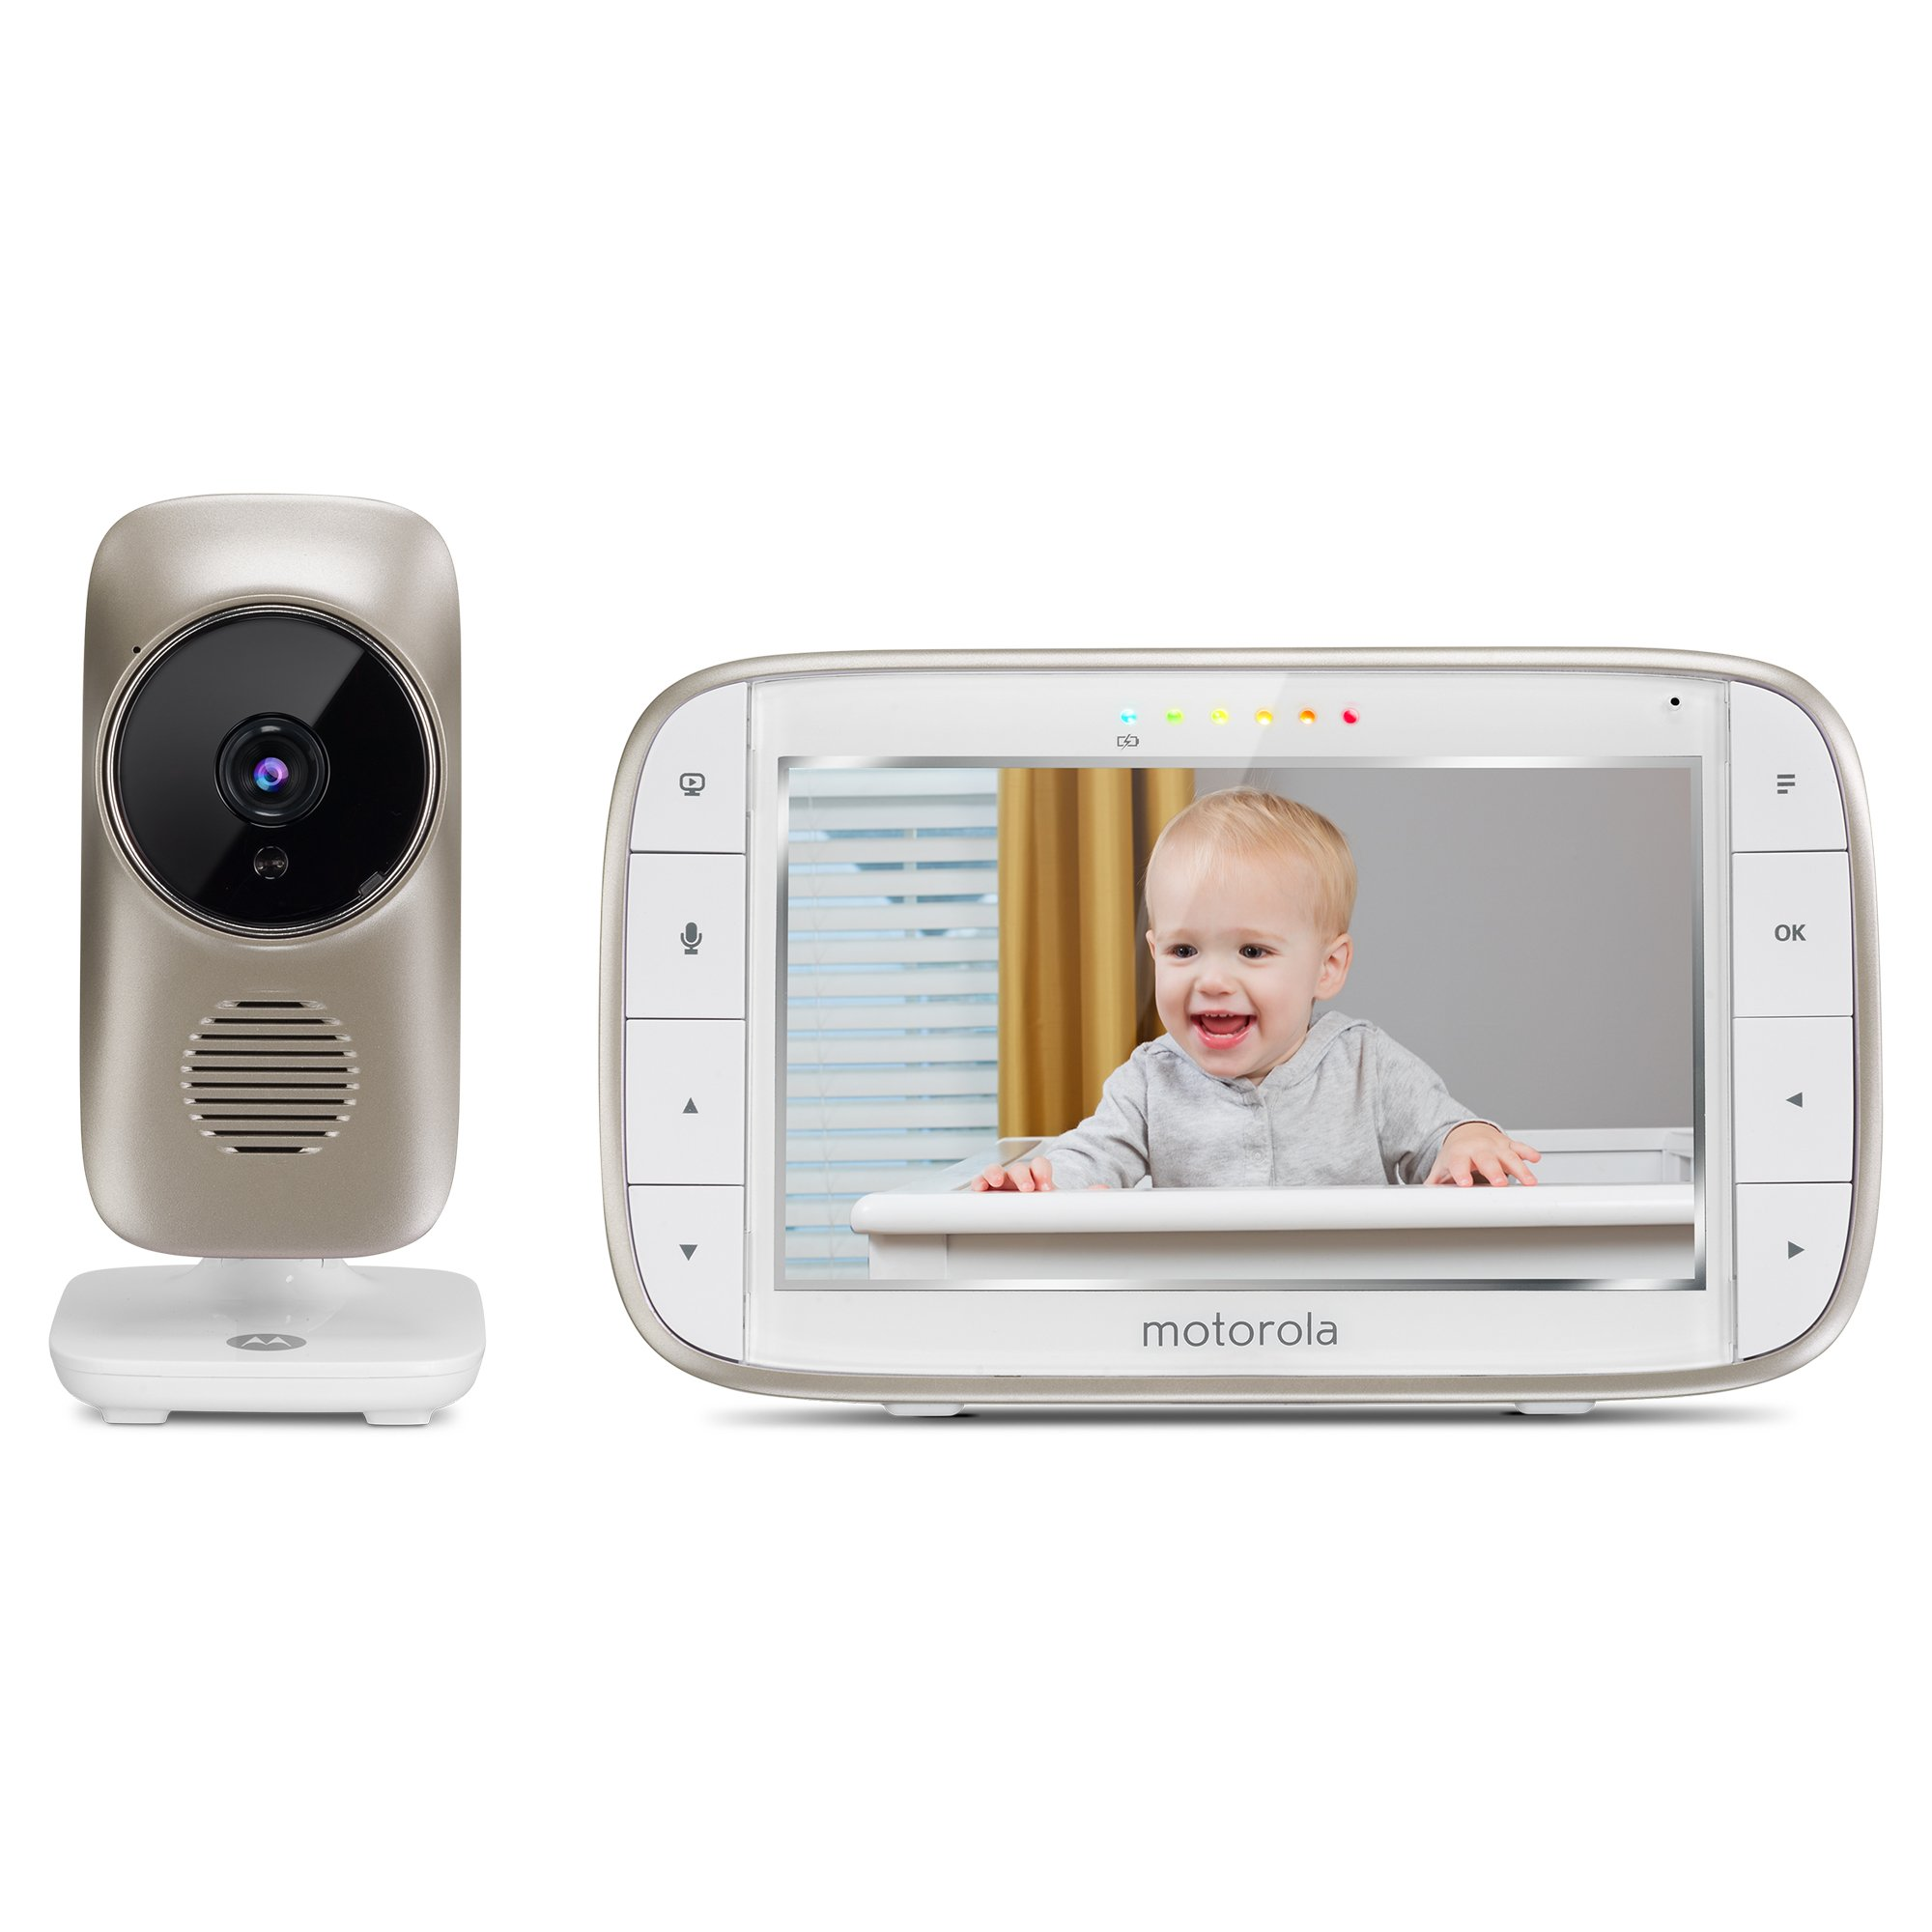 Motorola MBP845Connect Video Baby Monitor with Wi-Fi, 5-Inch Color Screen, Digital Zoom, Two-Way Audio, Infrared Night Vision, and Room Temperature Display